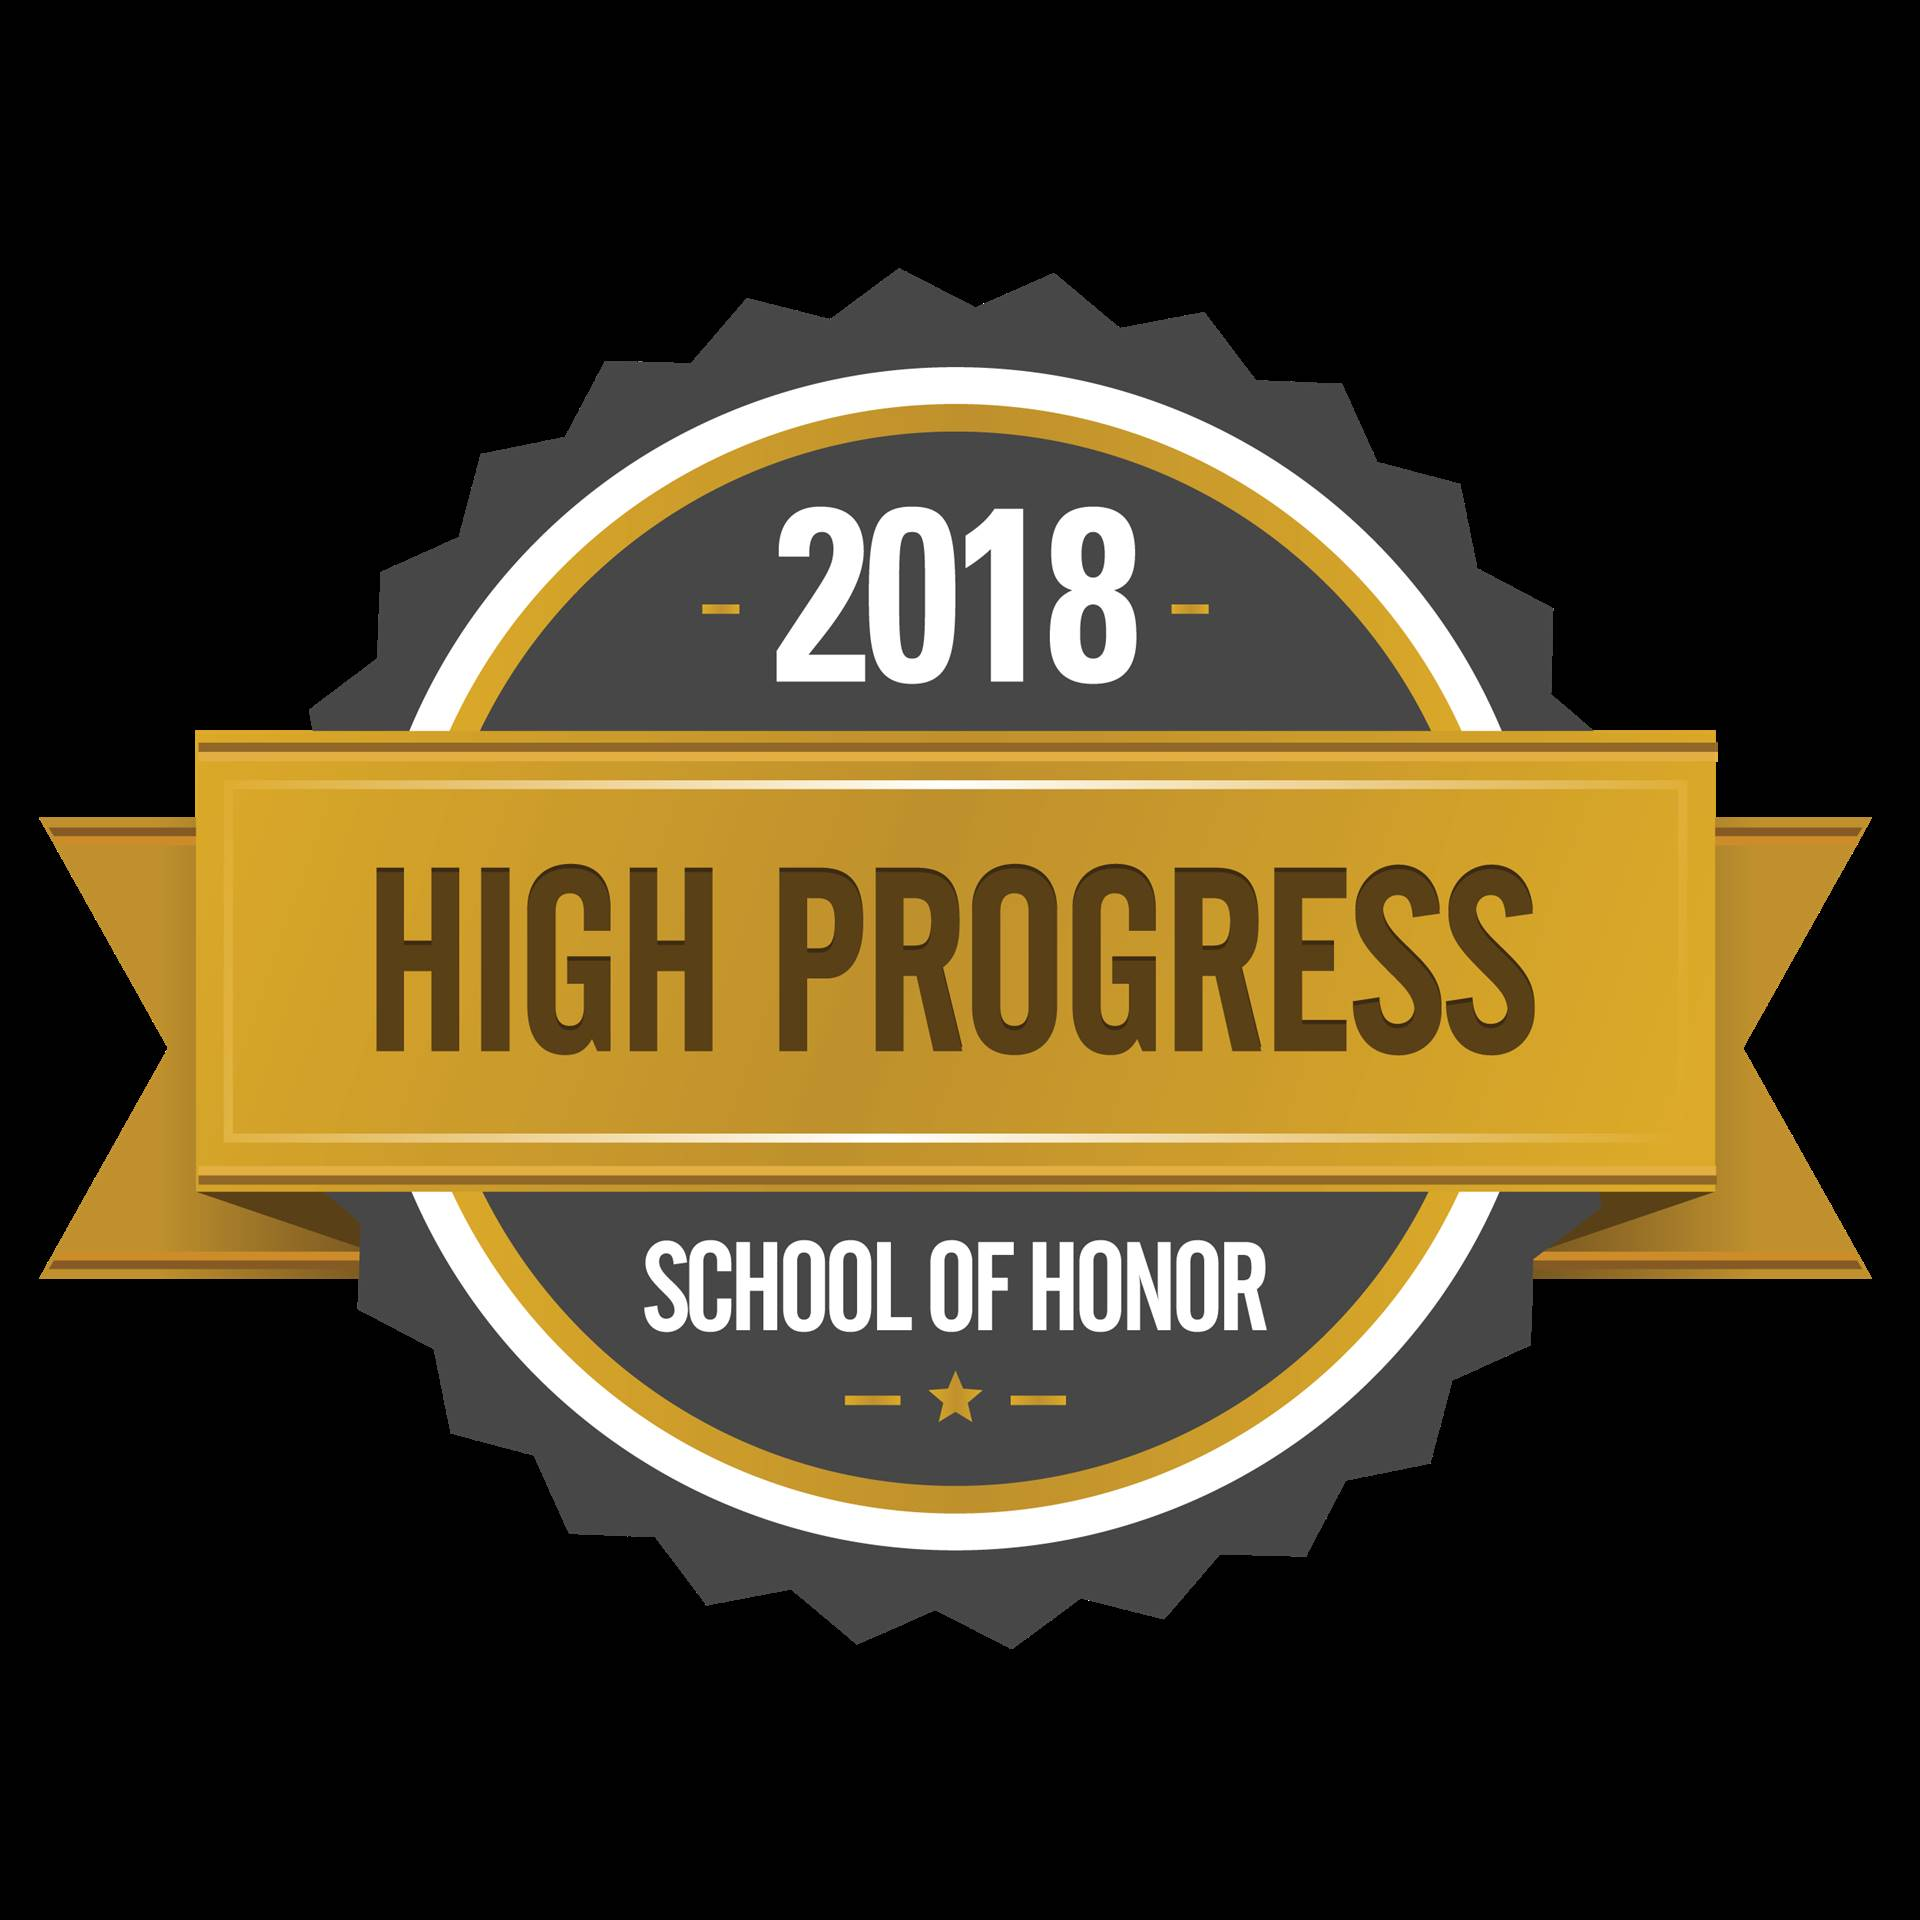 2018 High Progress School of Honor - award by ODE